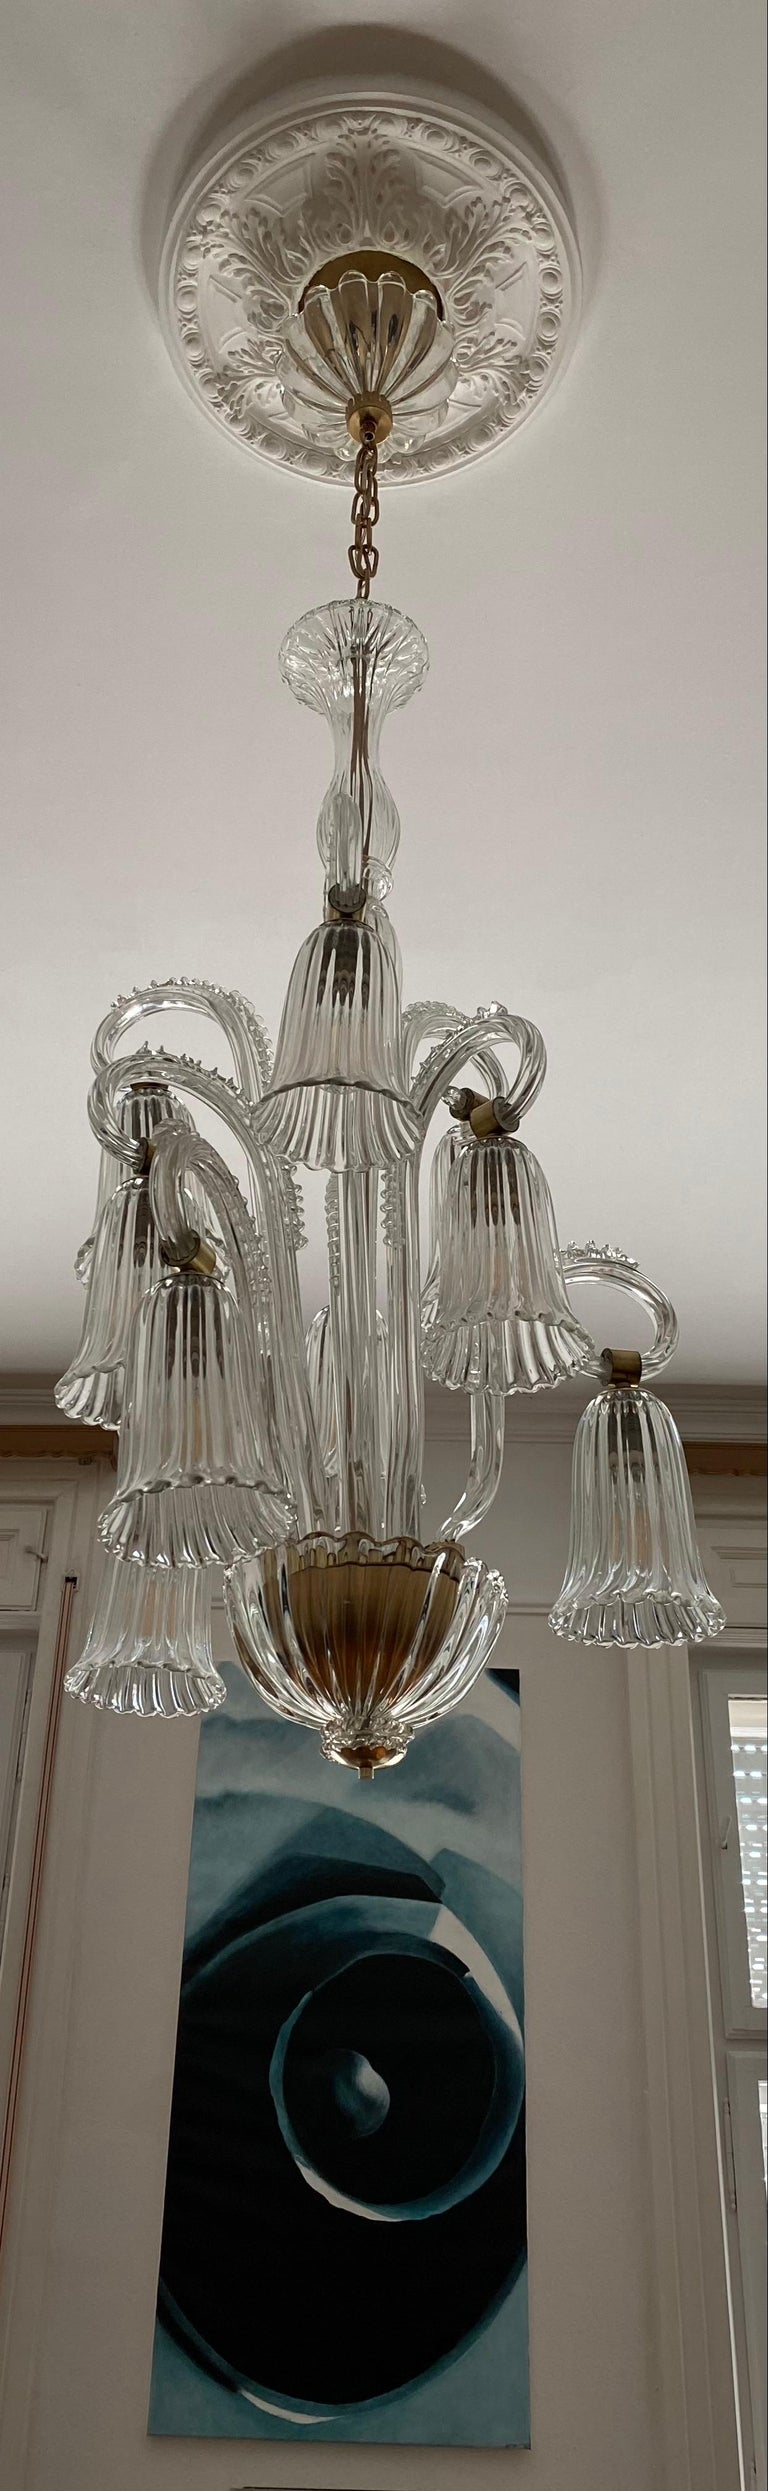 20th Century Charming Italian Chandelier by Ercole Barovier, Murano, 1940s For Sale